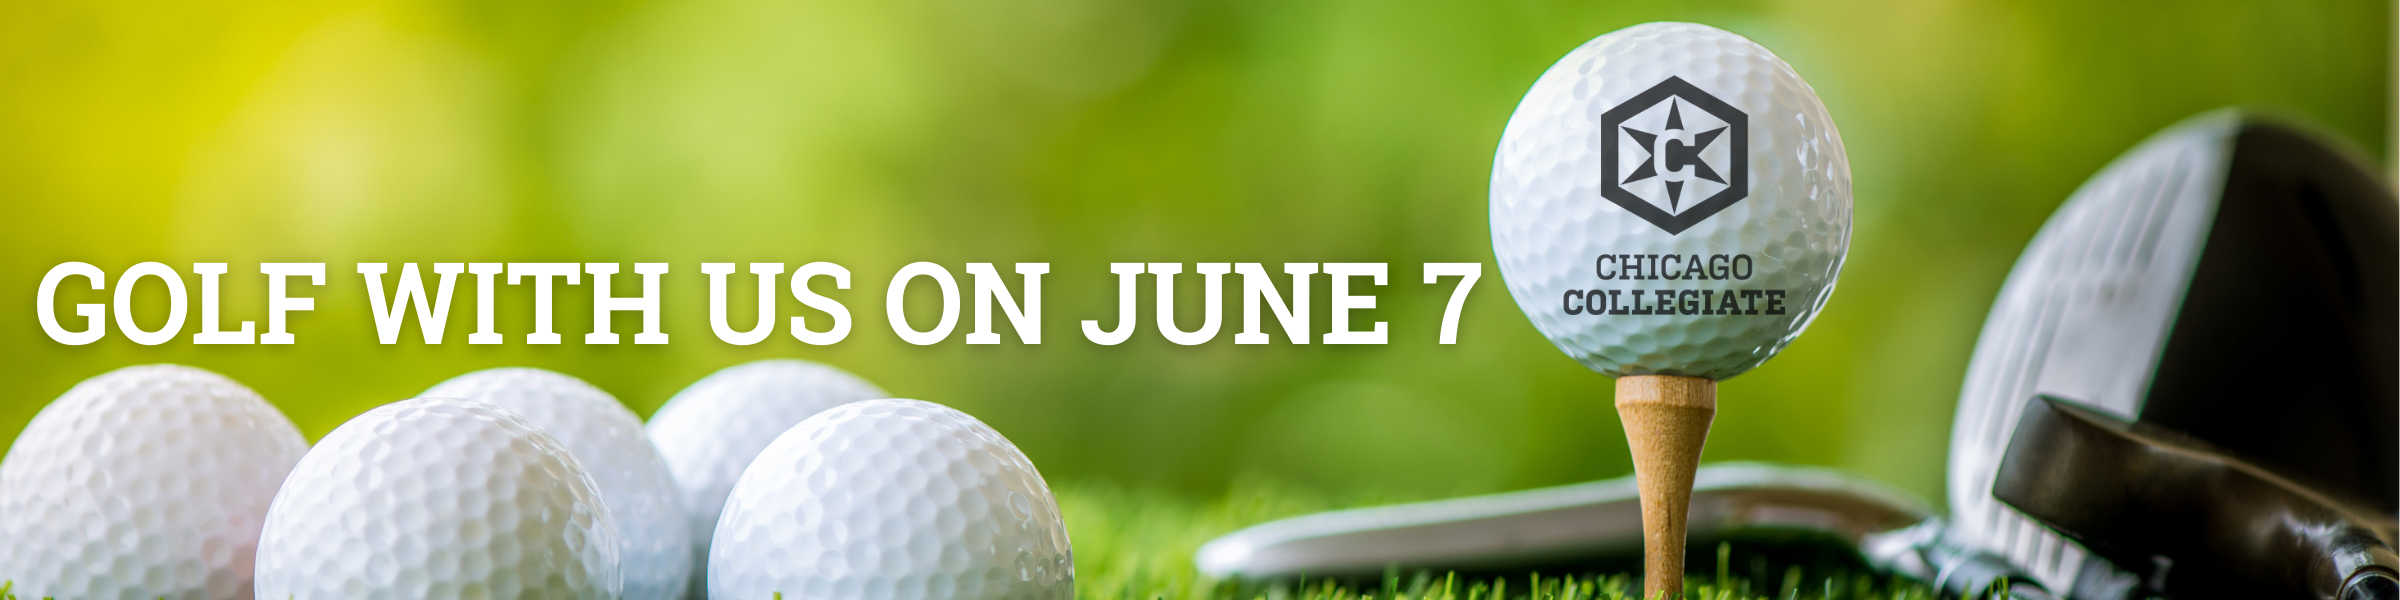 Copy of You're invited to a golf outing! (3)